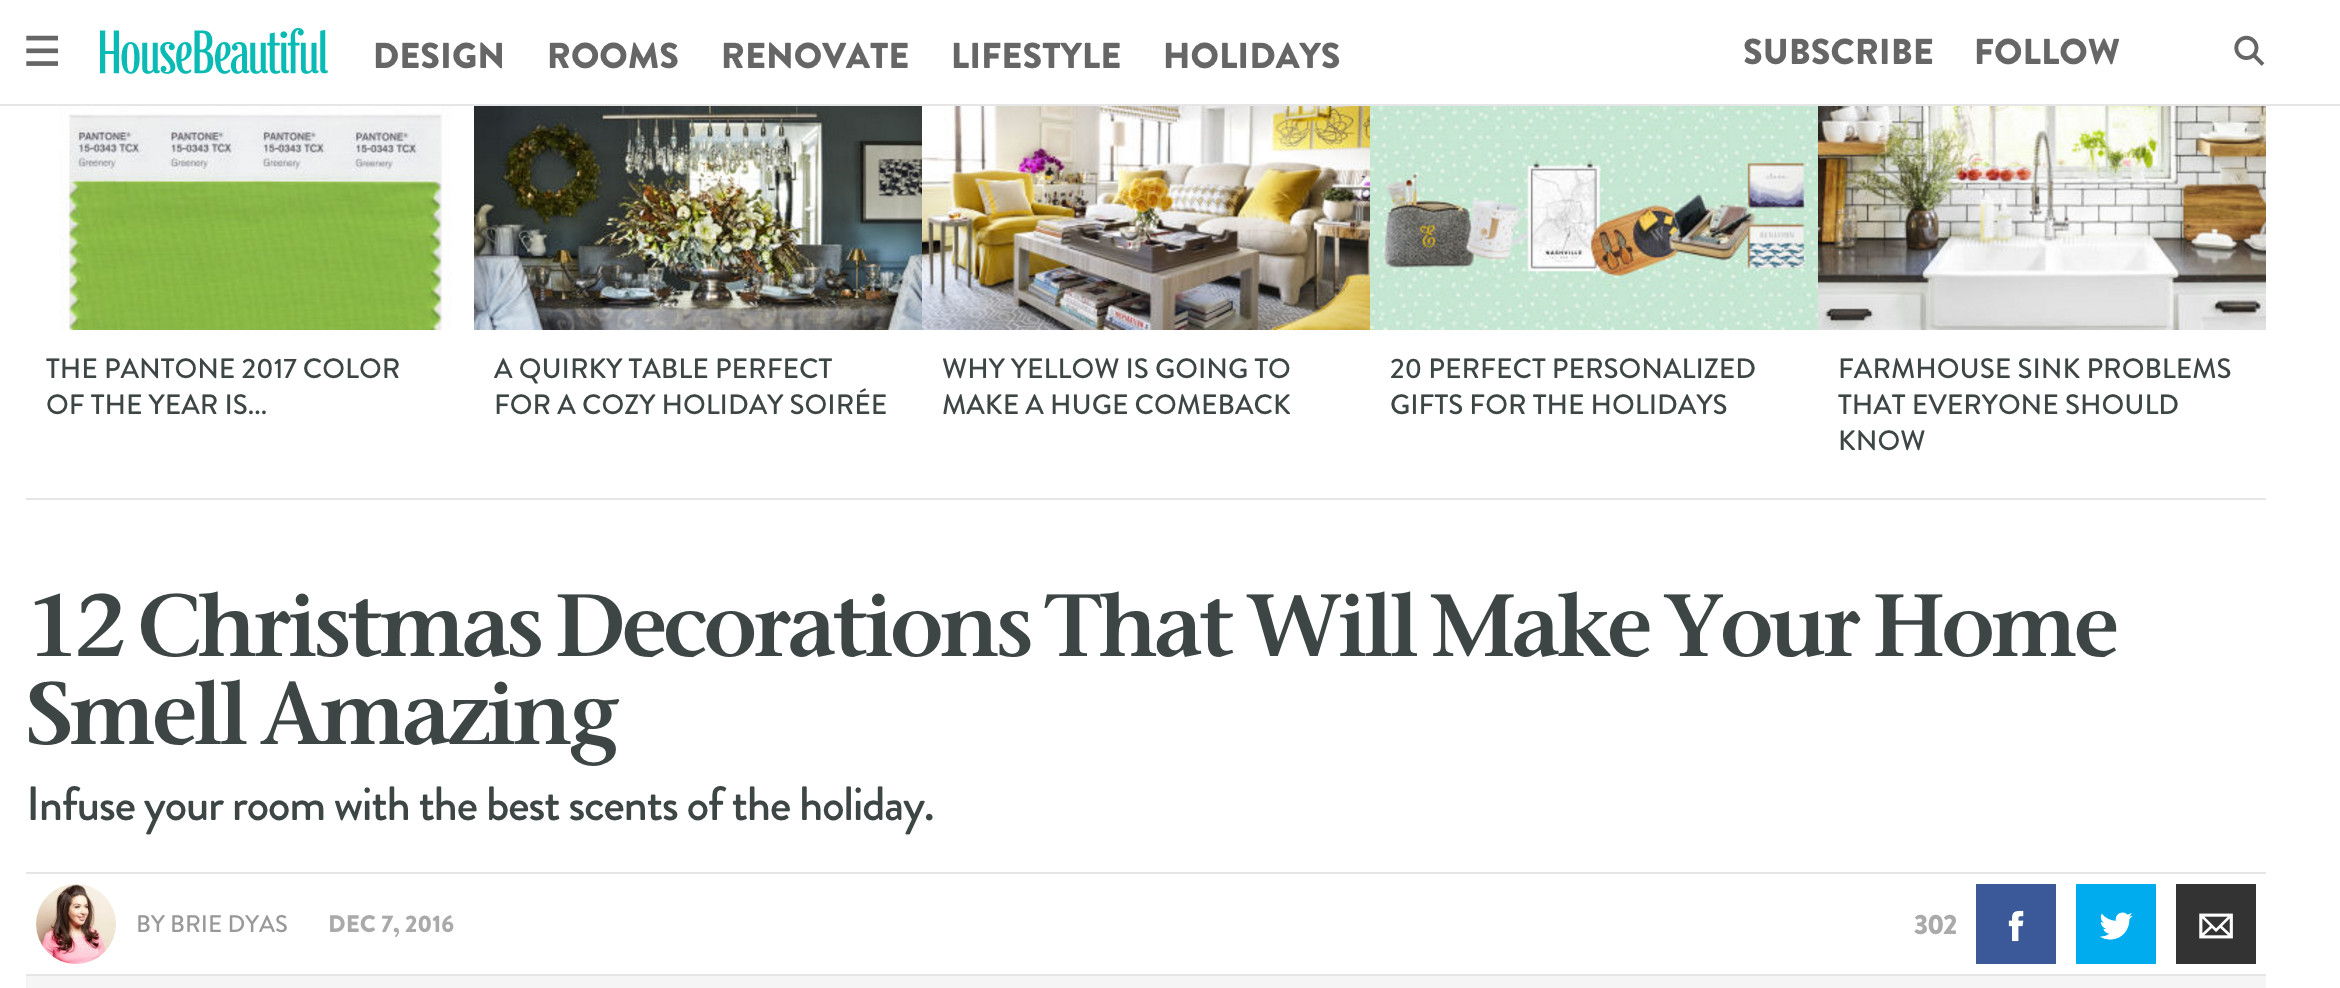 your DIY family featured in house beautiful